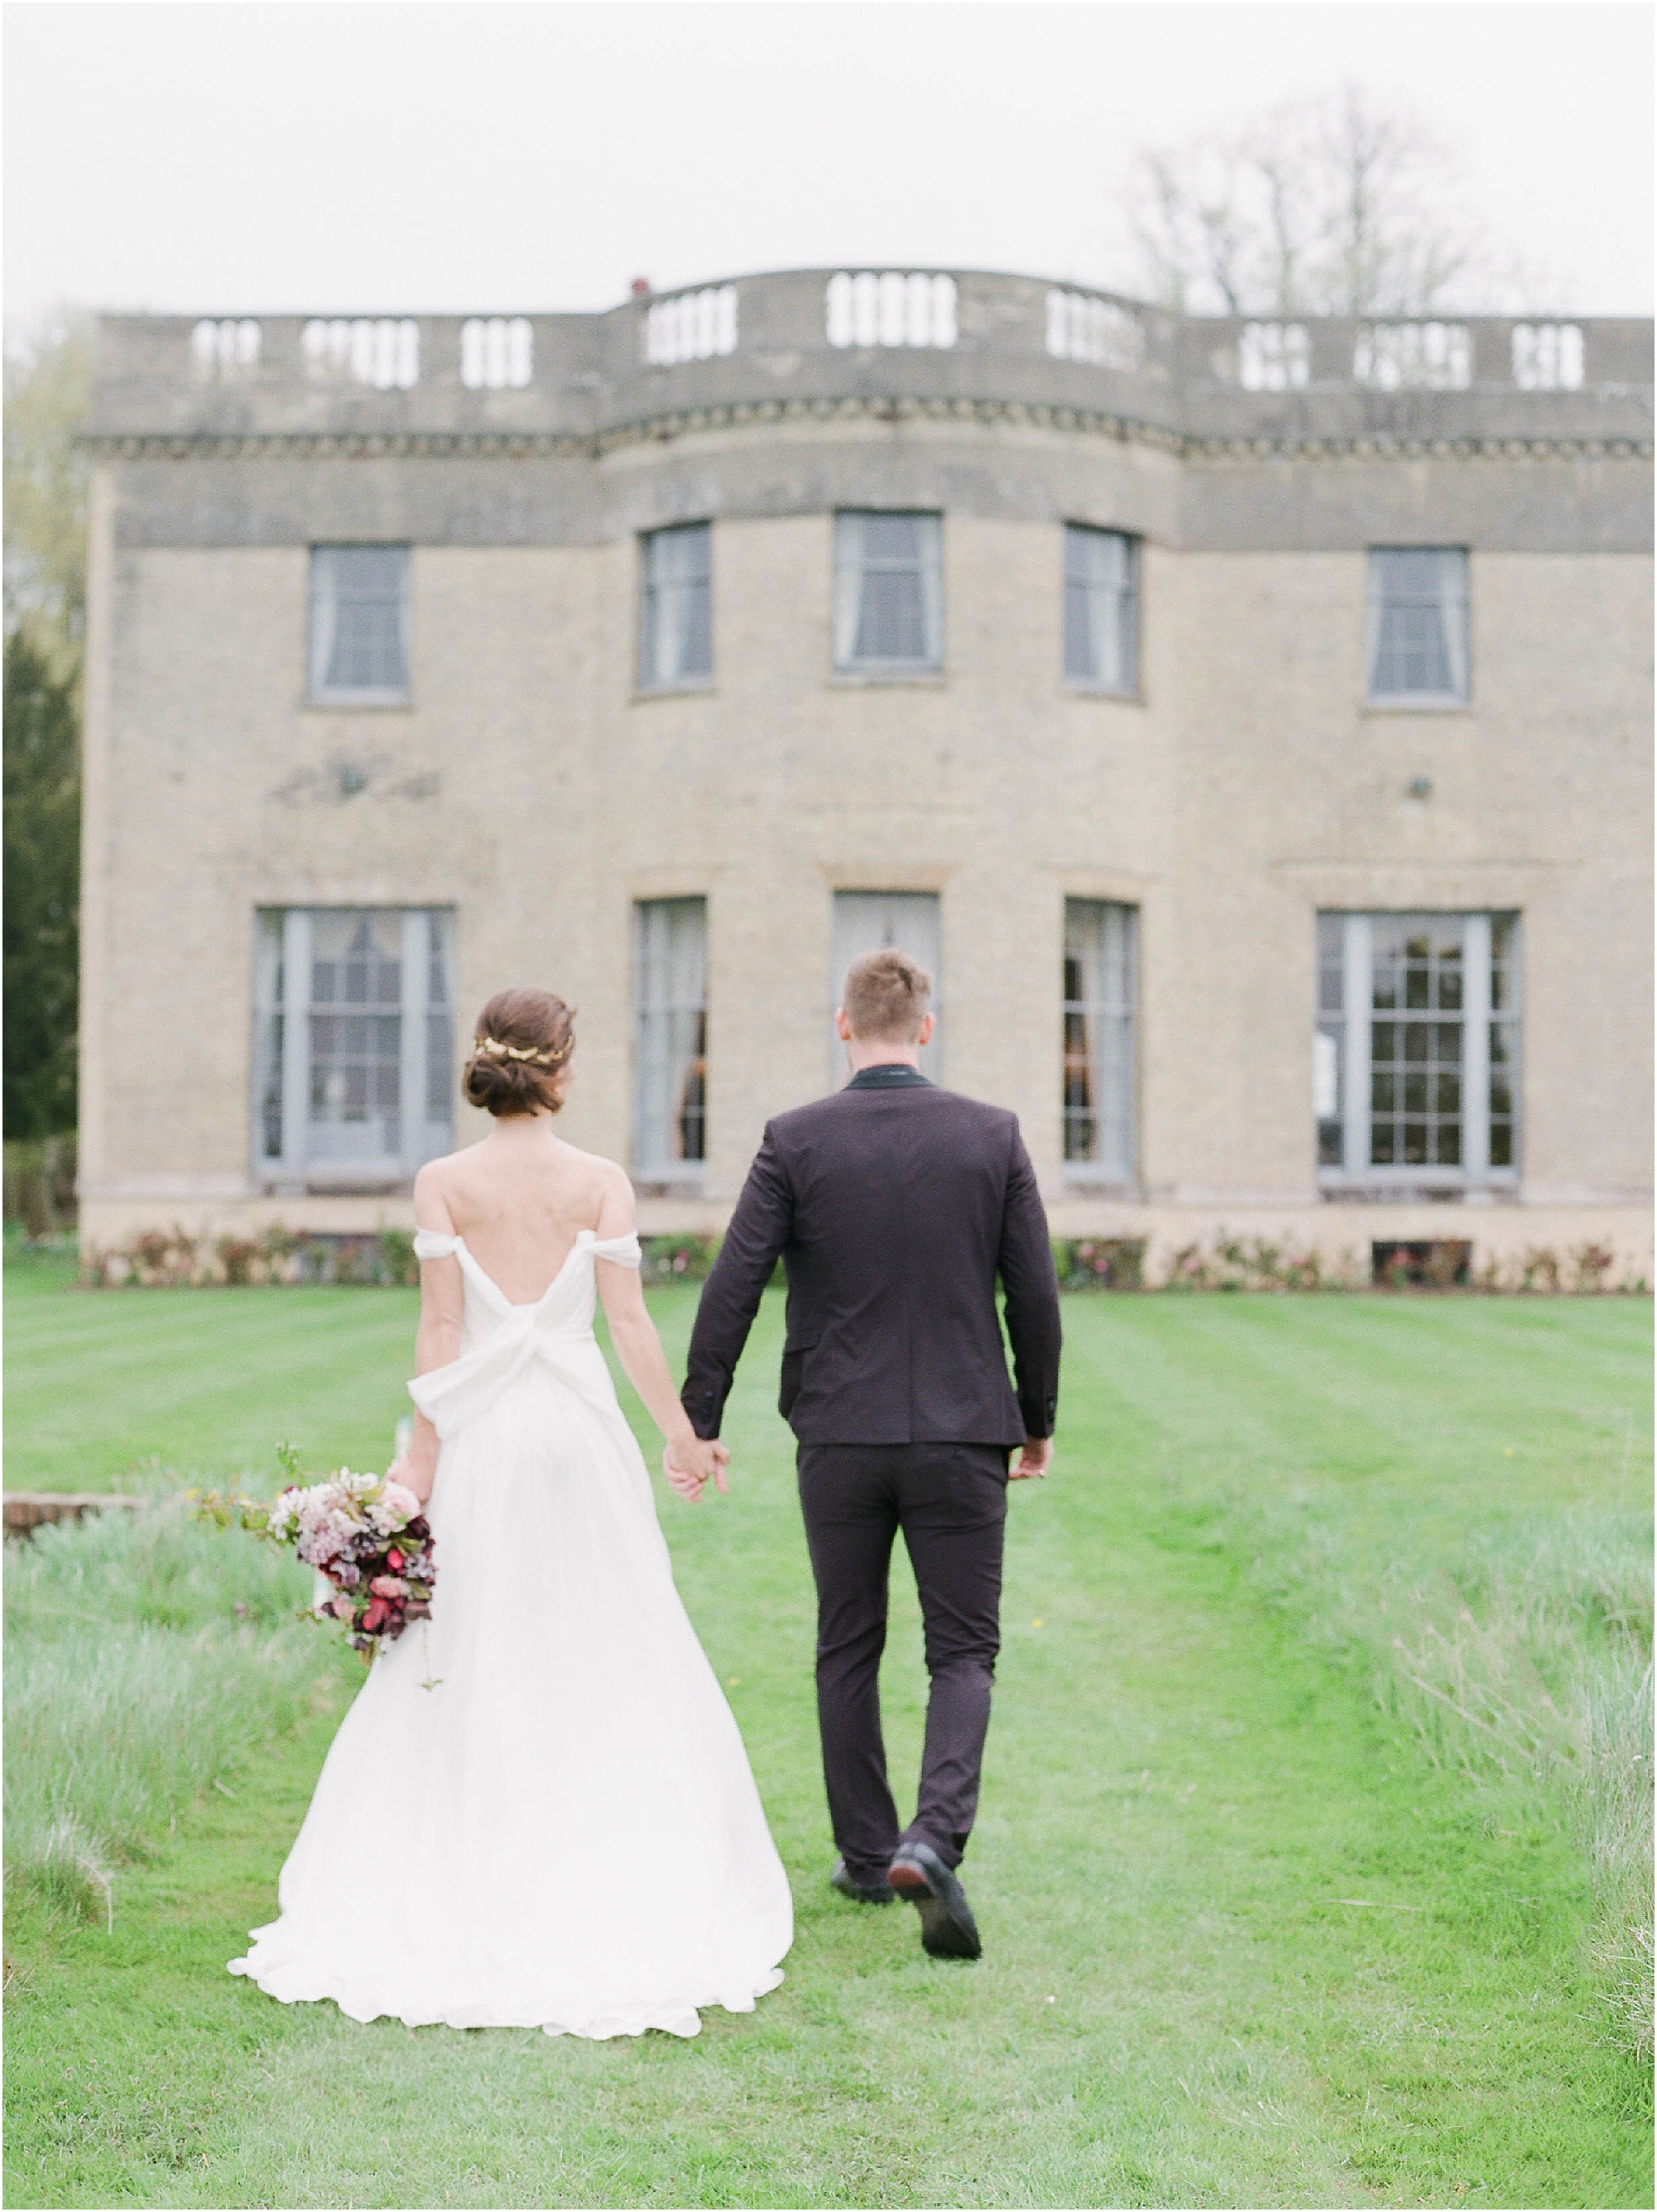 Bride and groom walking towards manor house wedding